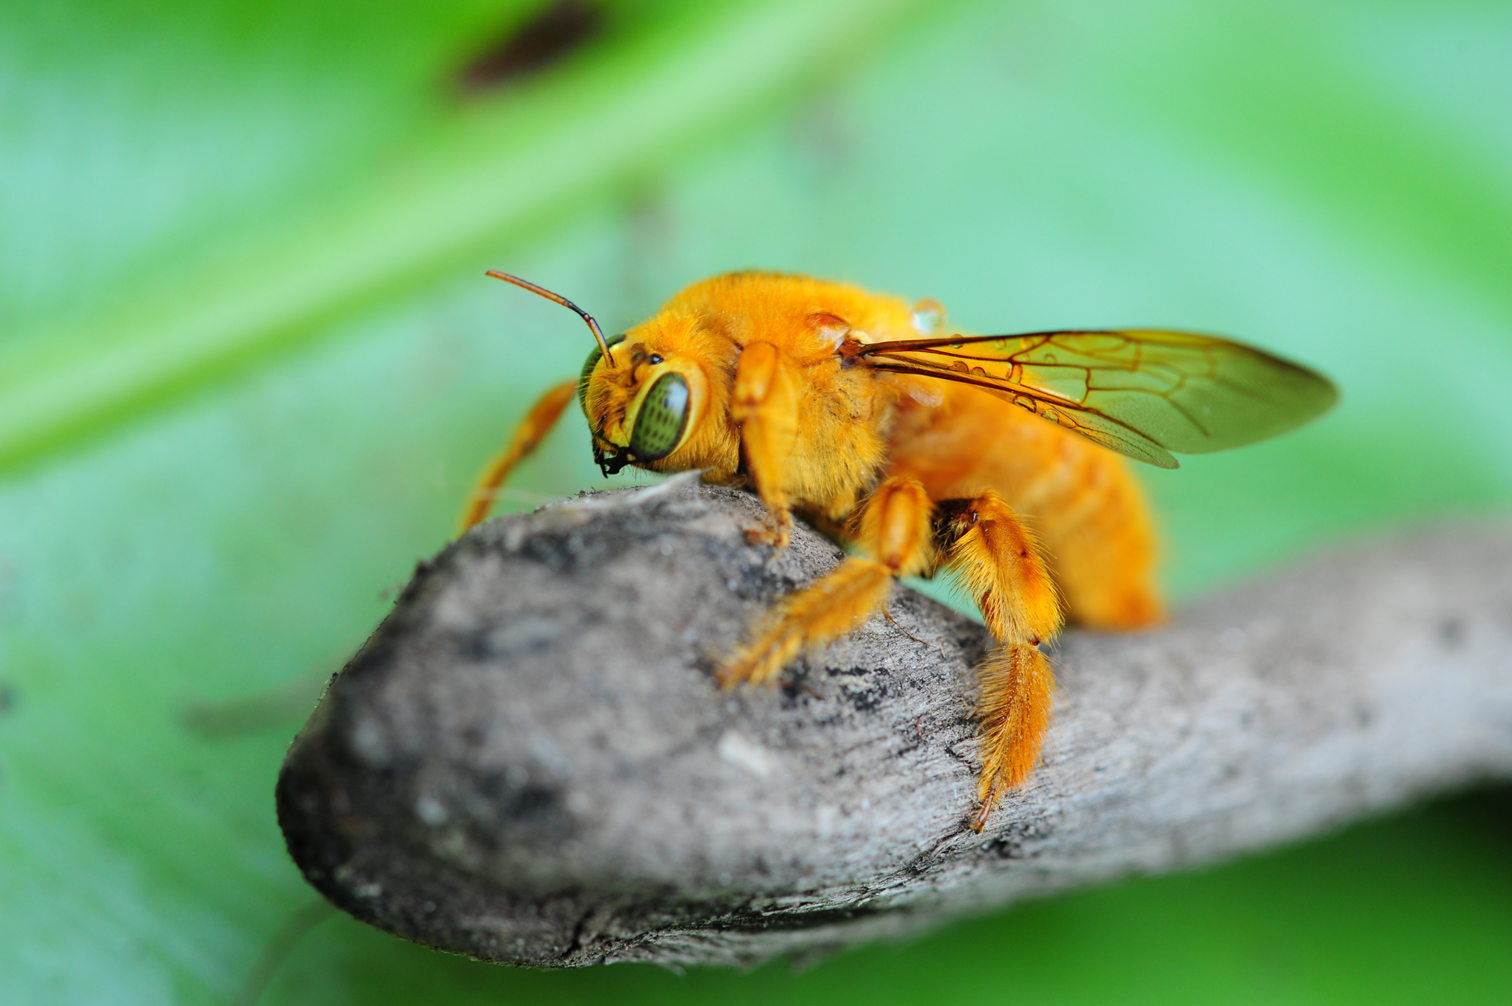 Fuzzy carpenter bee perched on a plant